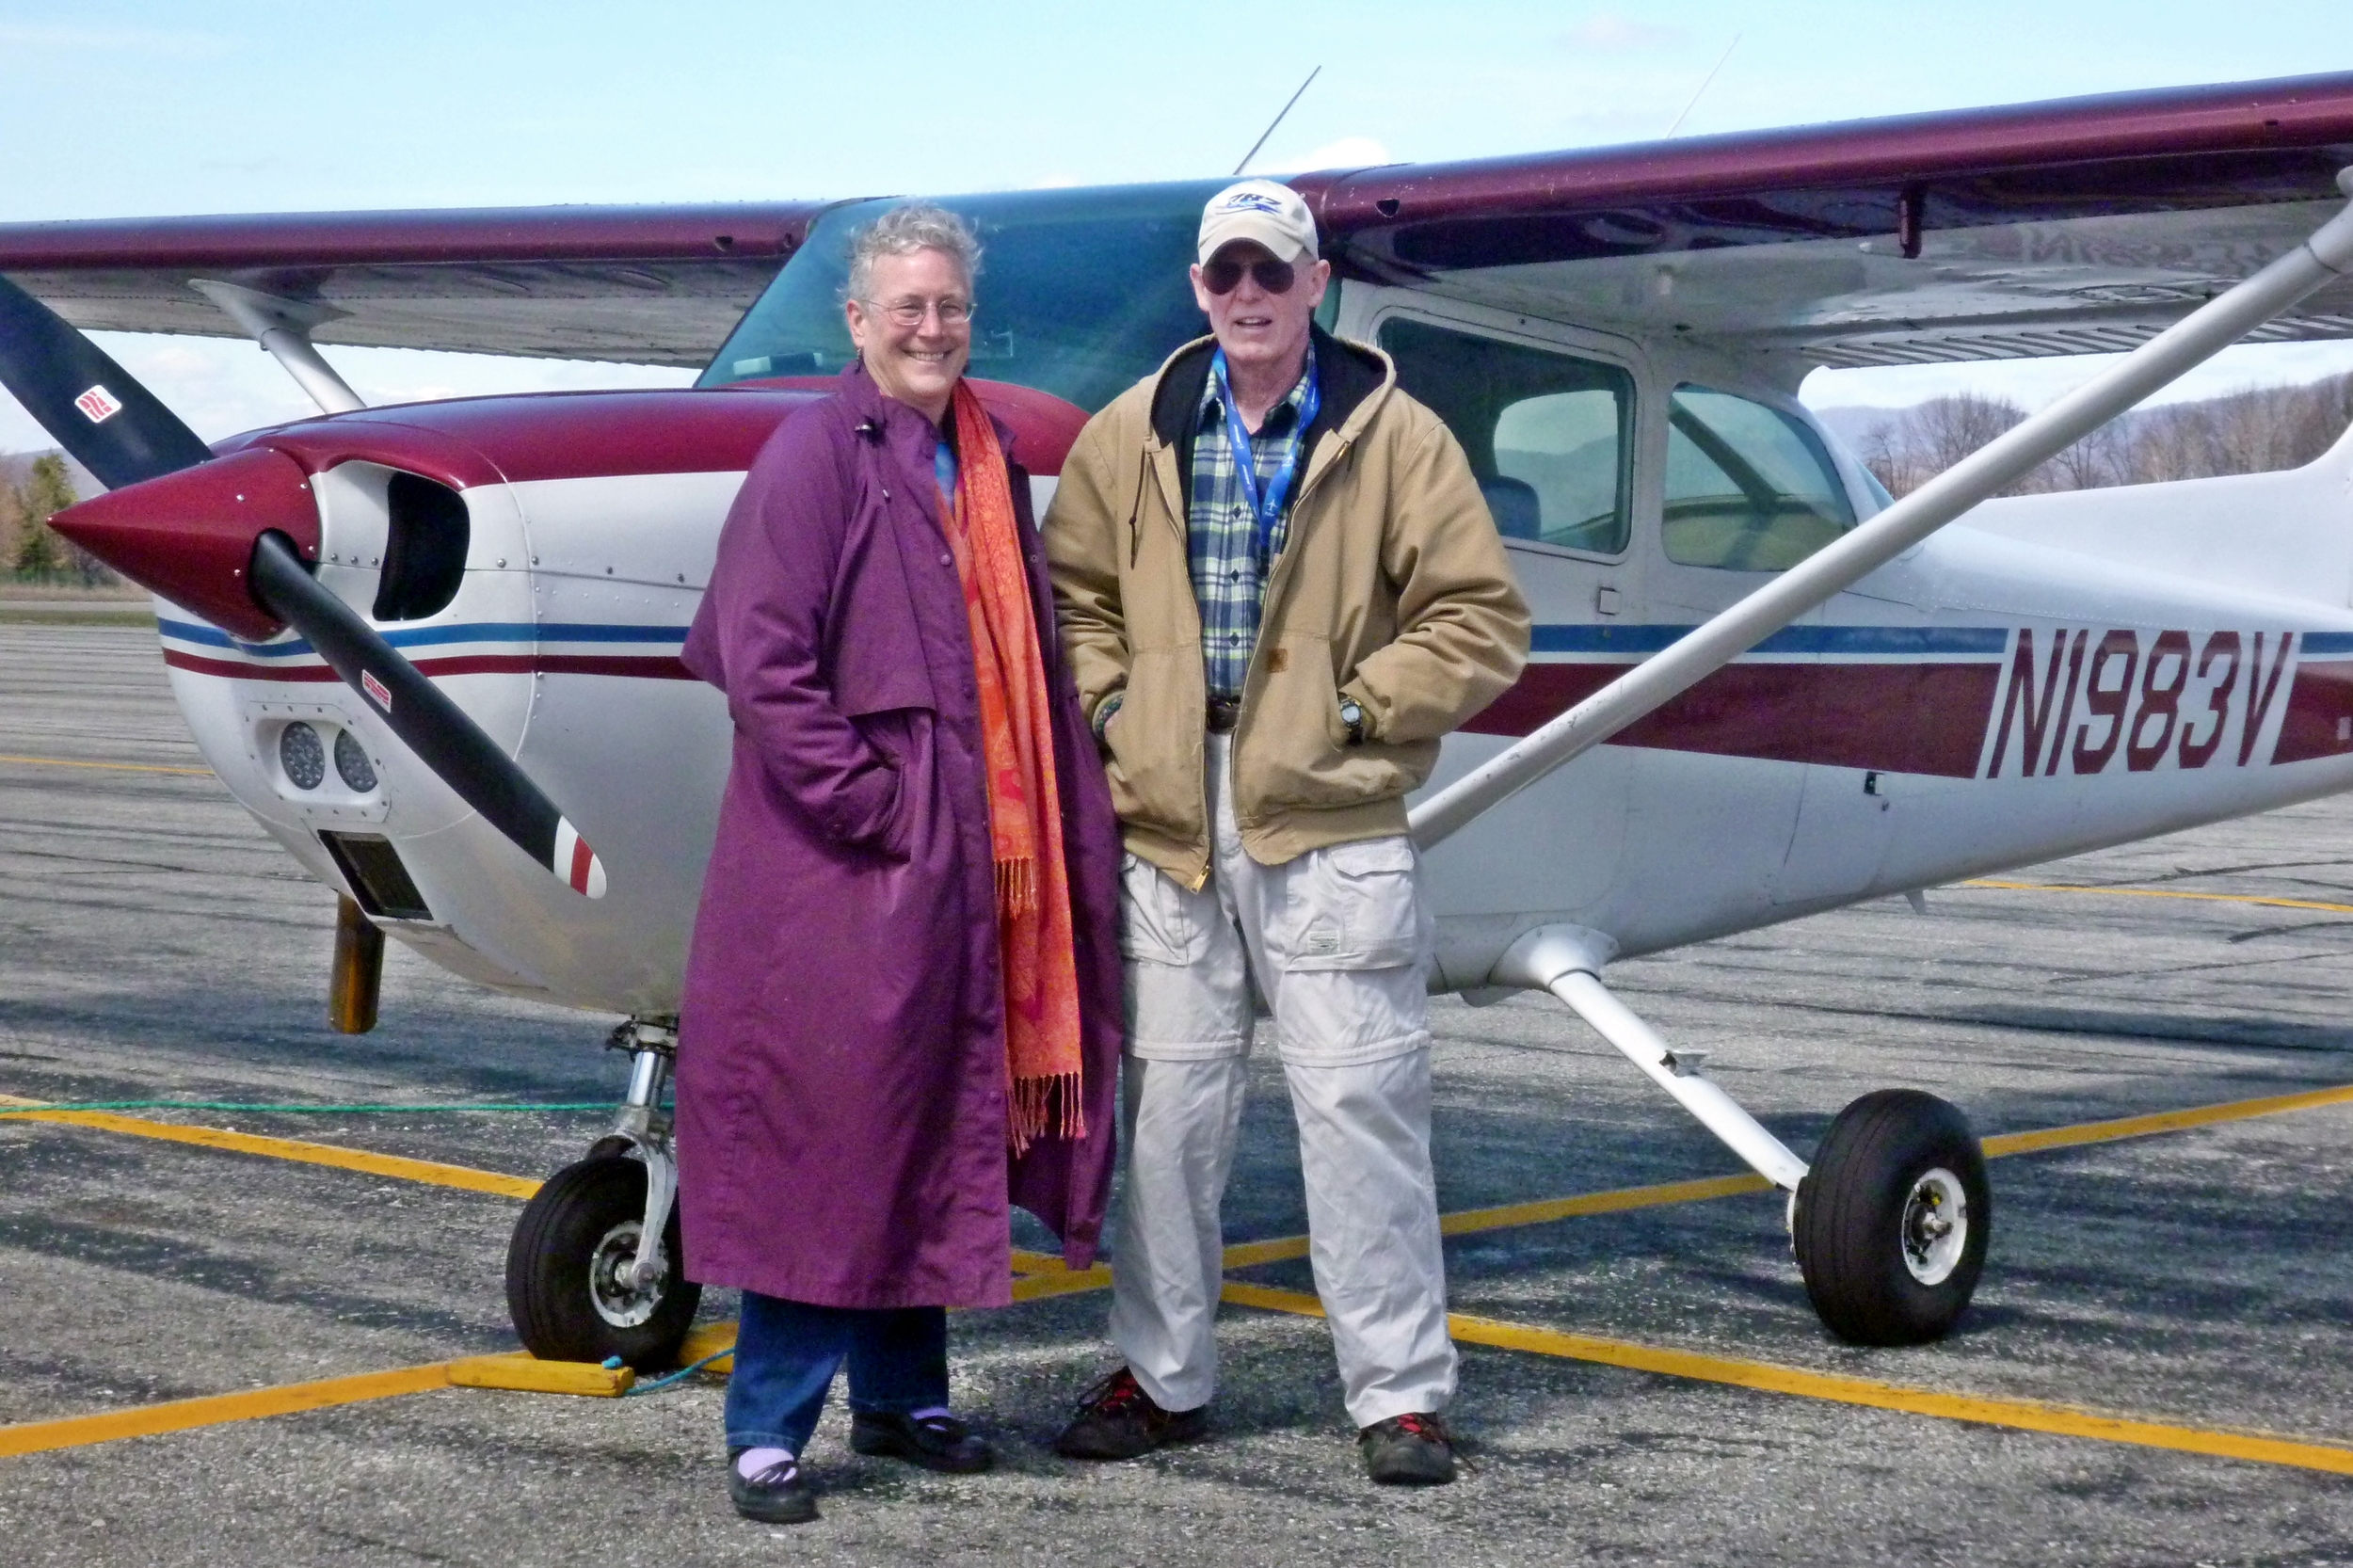 Maurice Regan and Liz MacBride flew in from New Hampshire